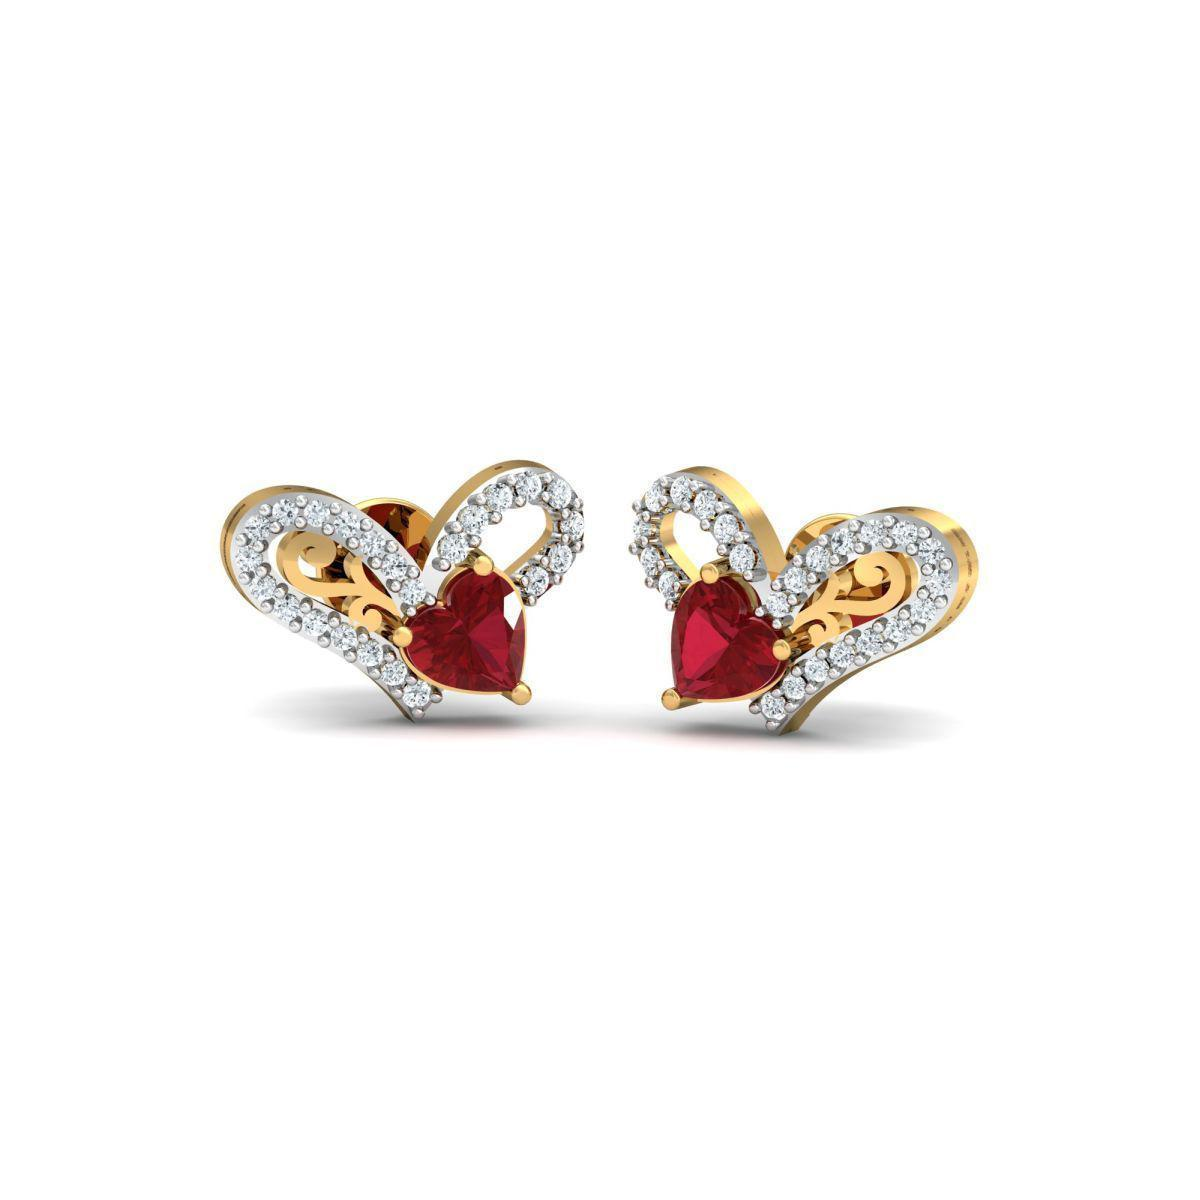 Diamoire Jewels 18kt Yellow Gold 0.22ct Pave Diamond Infinity Earrings With Ruby II KgGFgyXk